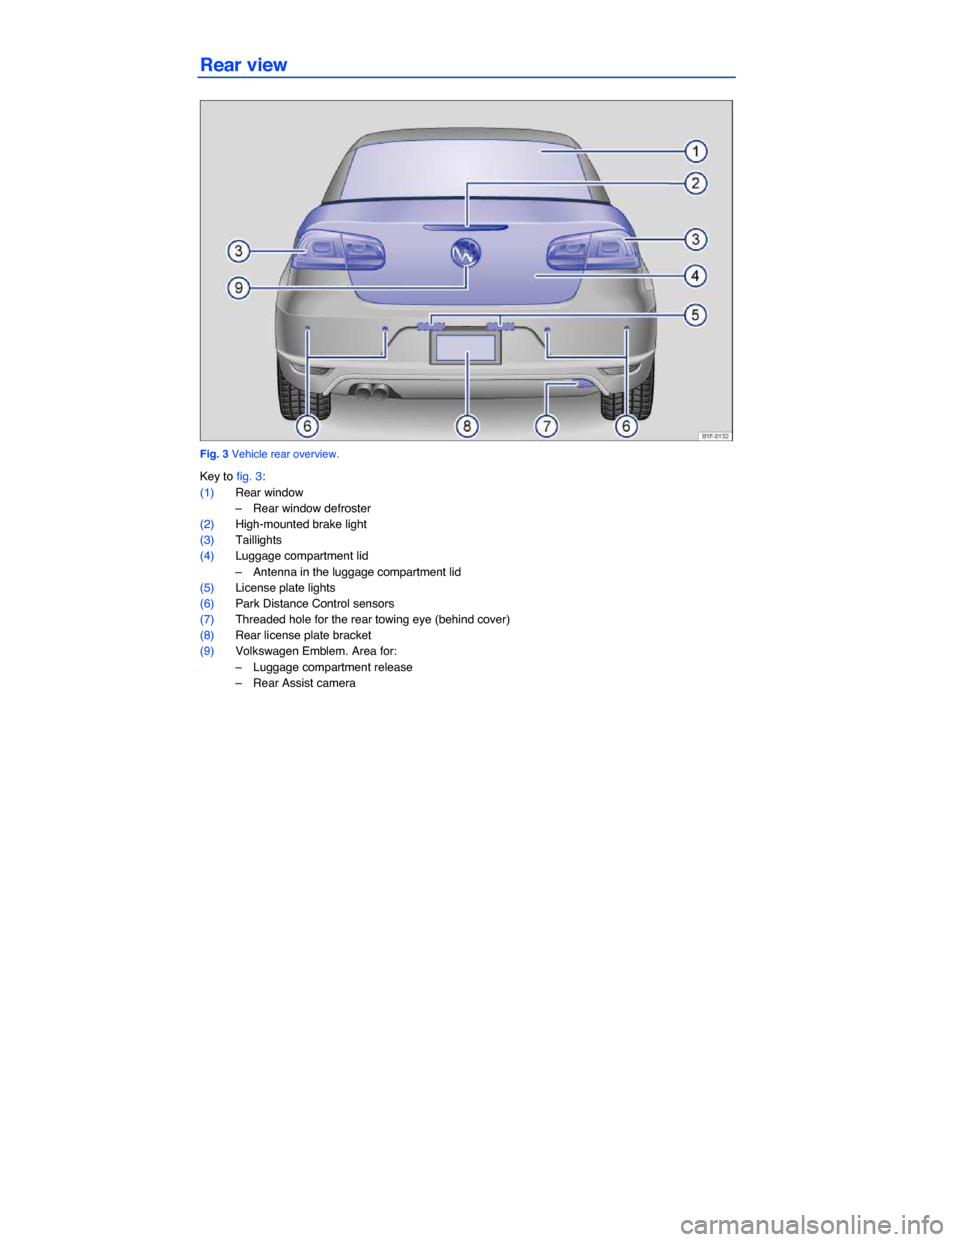 VOLKSWAGEN EOS 2013 1.G Owners Manual   Rear view    Fig. 3 Vehicle rear overview.  Key to fig. 3:  (1) Rear window  –  Rear window defroster   (2) High-mounted brake light  (3) Taillights  (4) Luggage compartment lid  –  Antenna in t